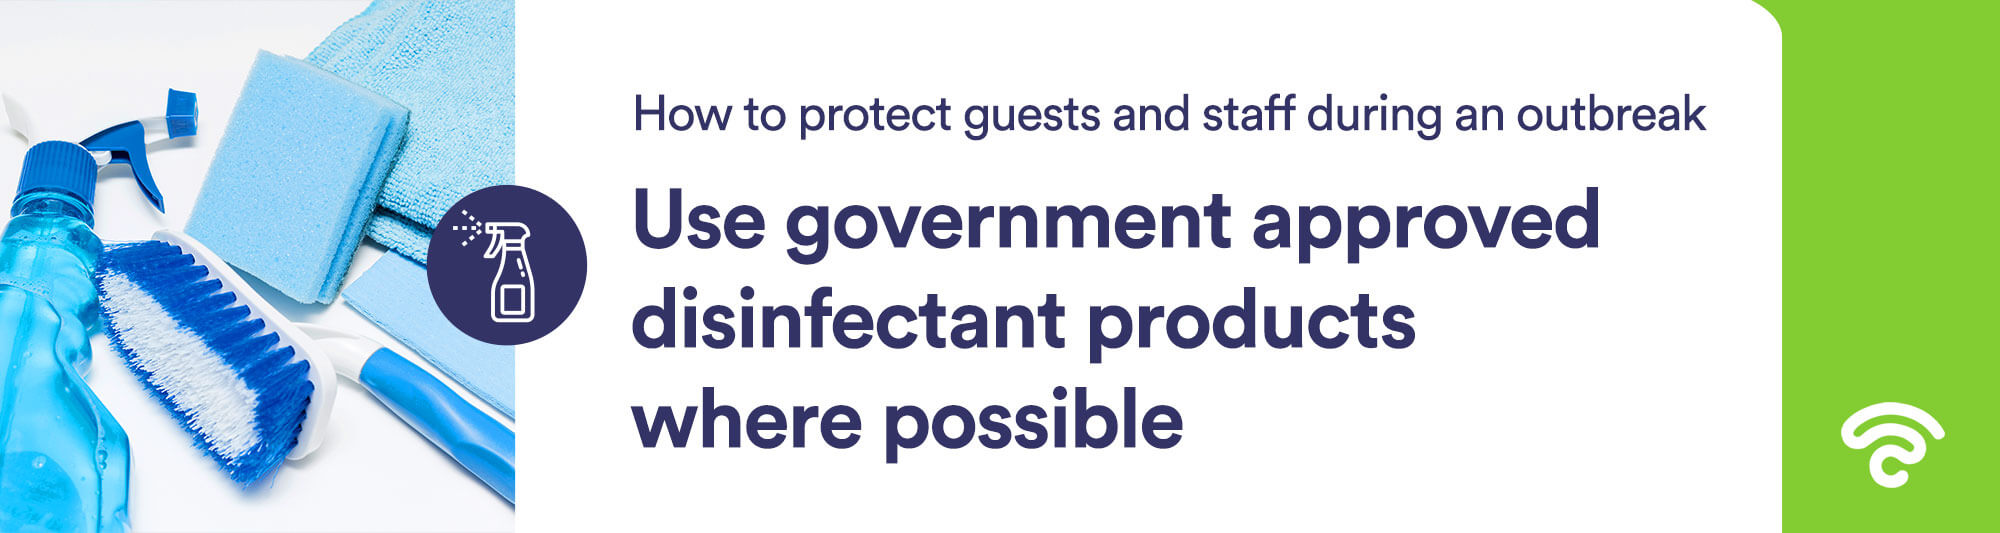 government approved disinfectant